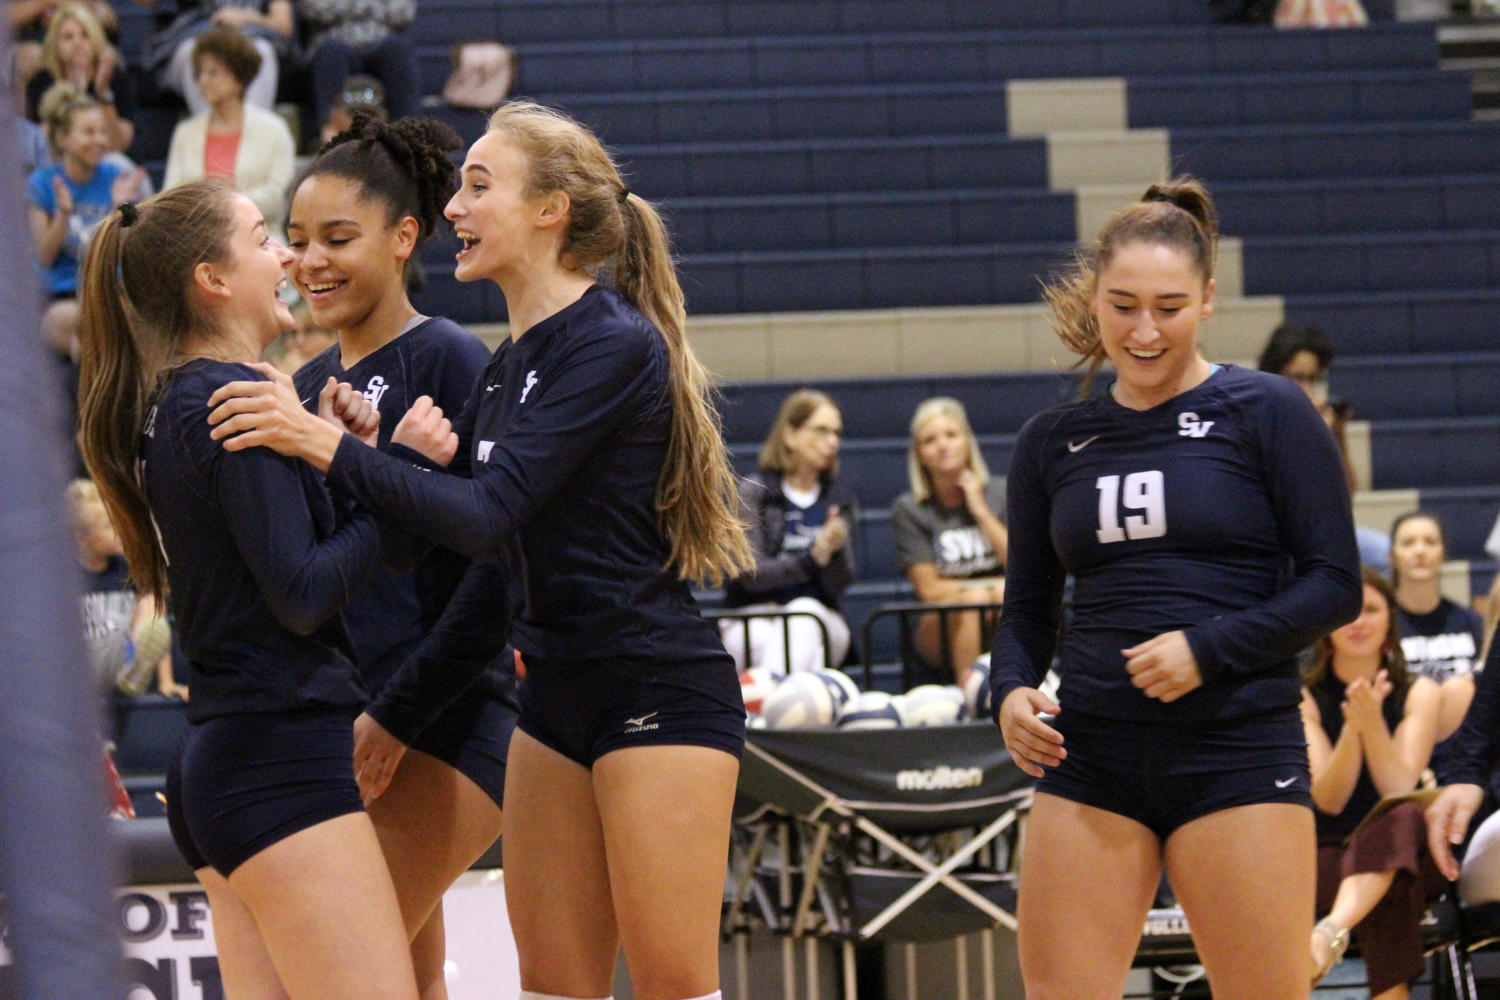 Volleyball rallies to conquer knights on Oct. 3